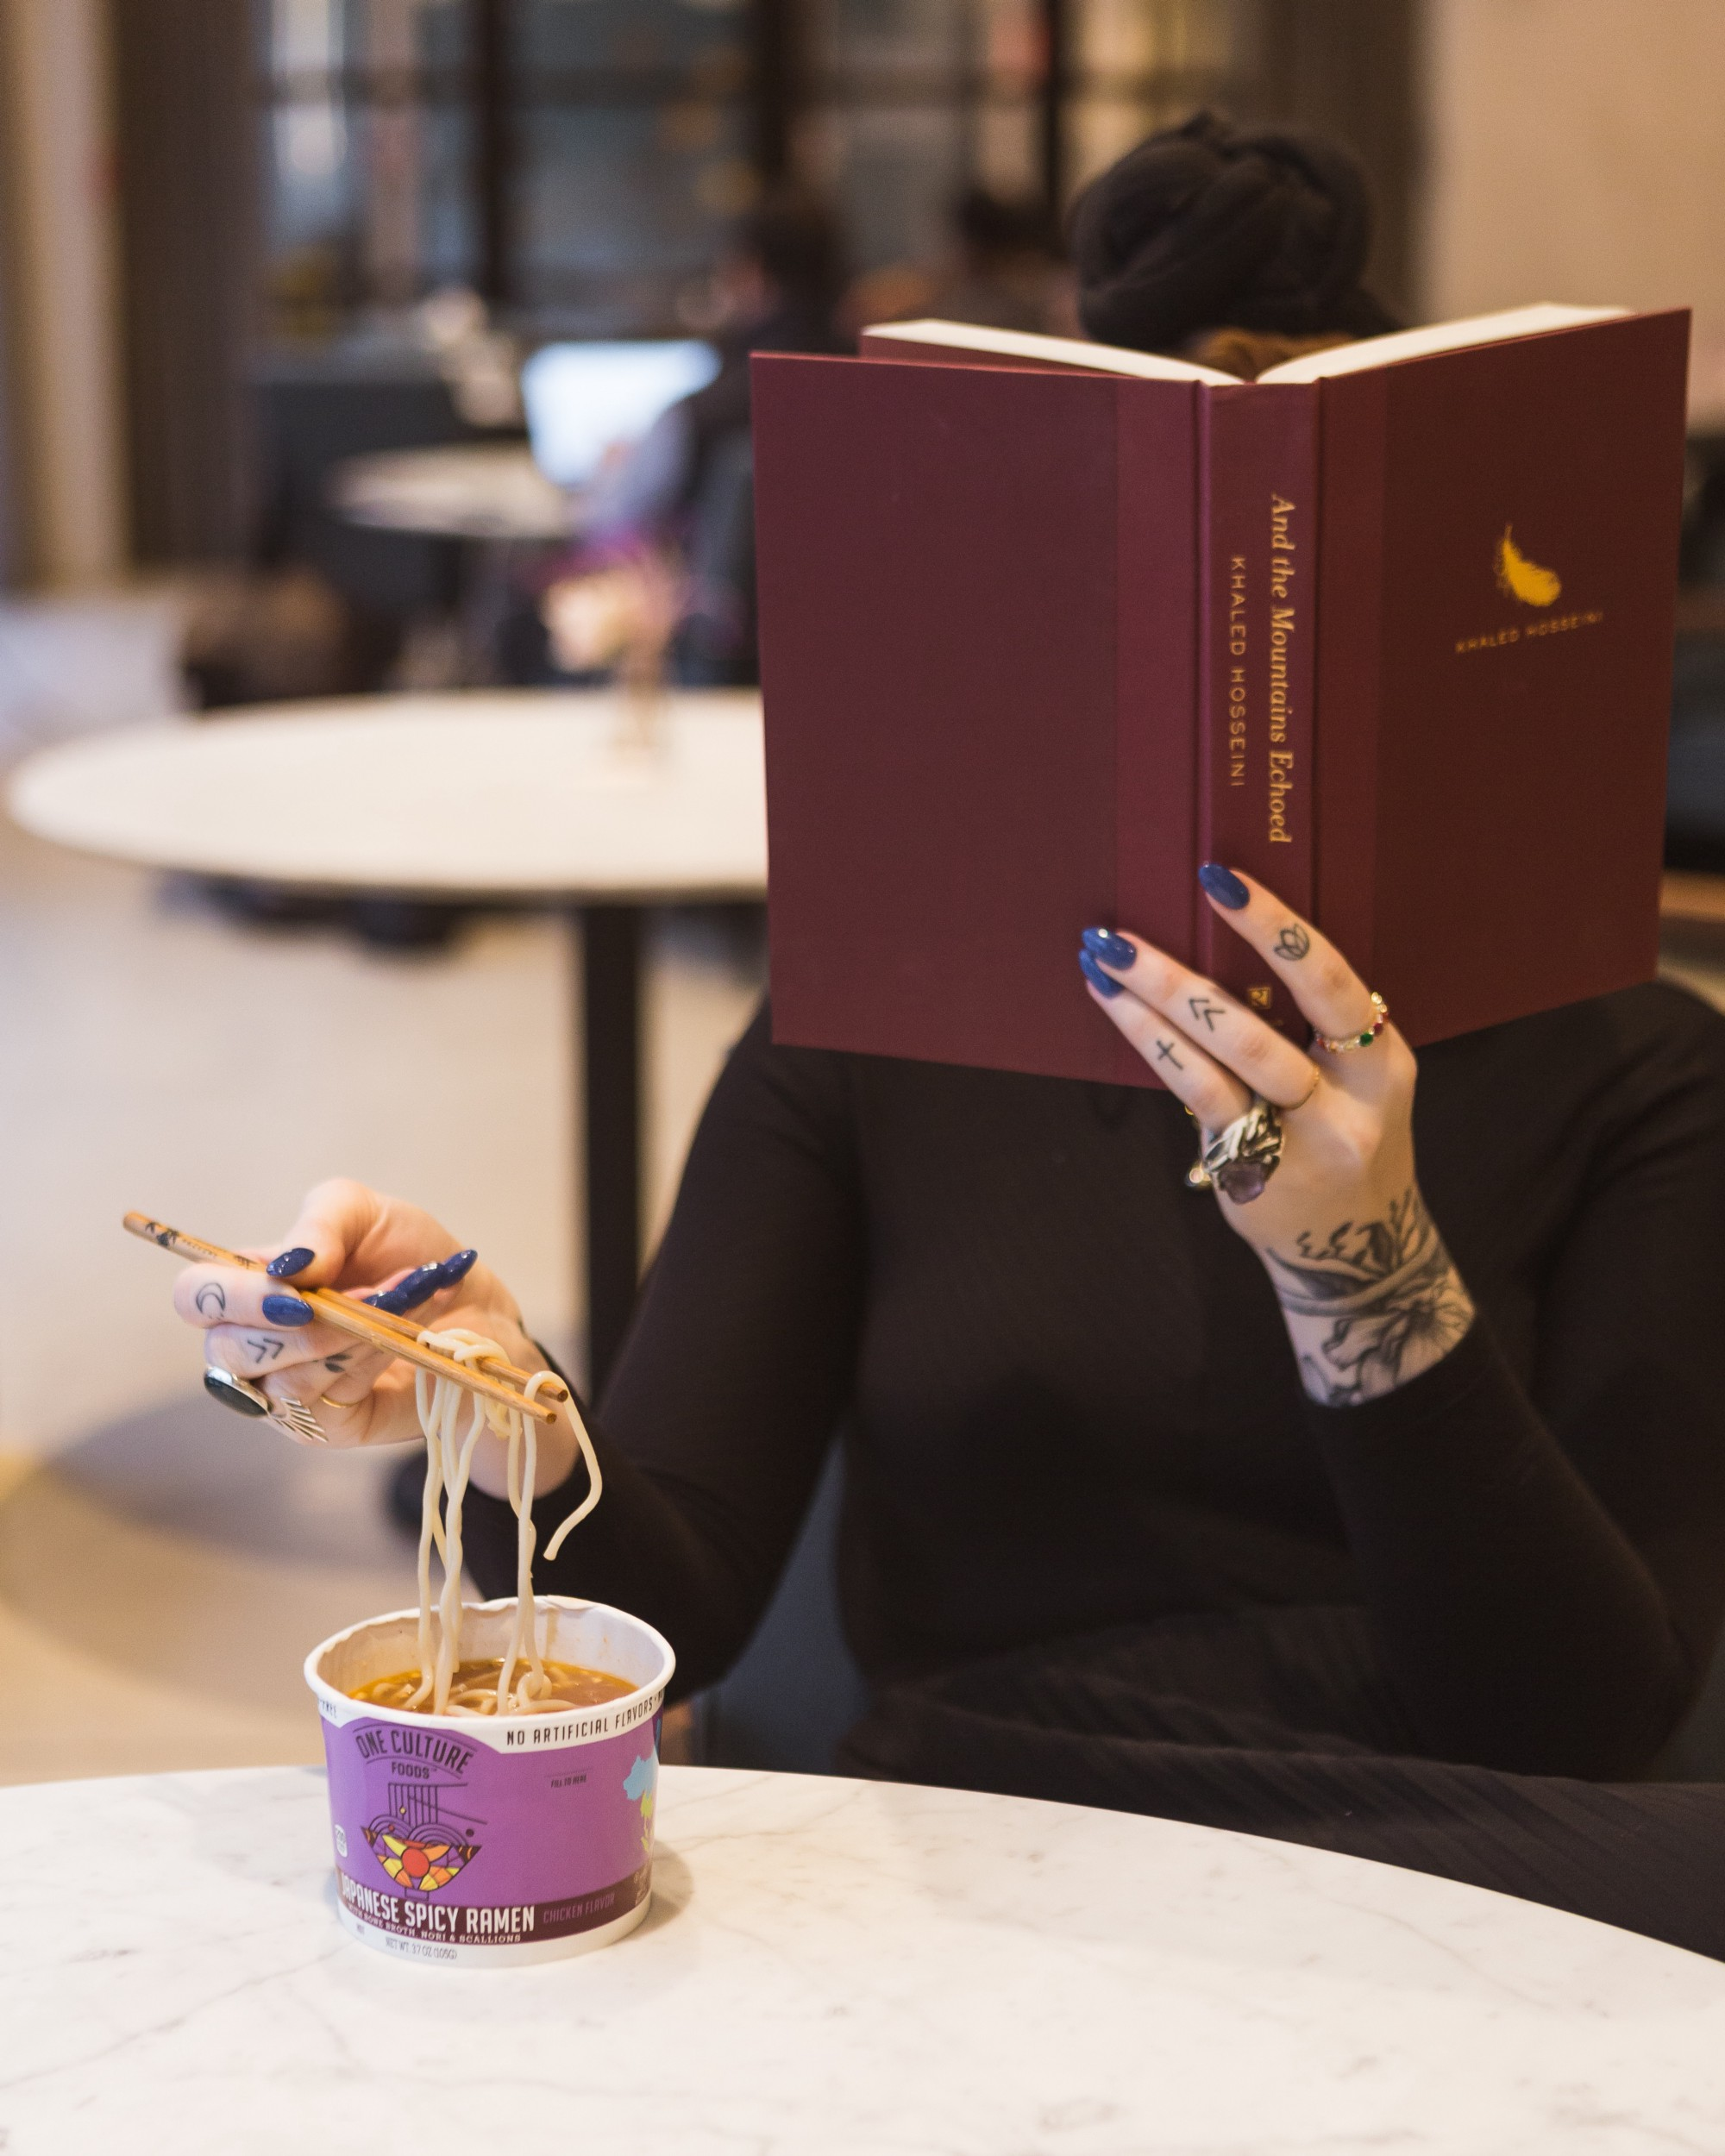 A woman trying to eat and read at the same time